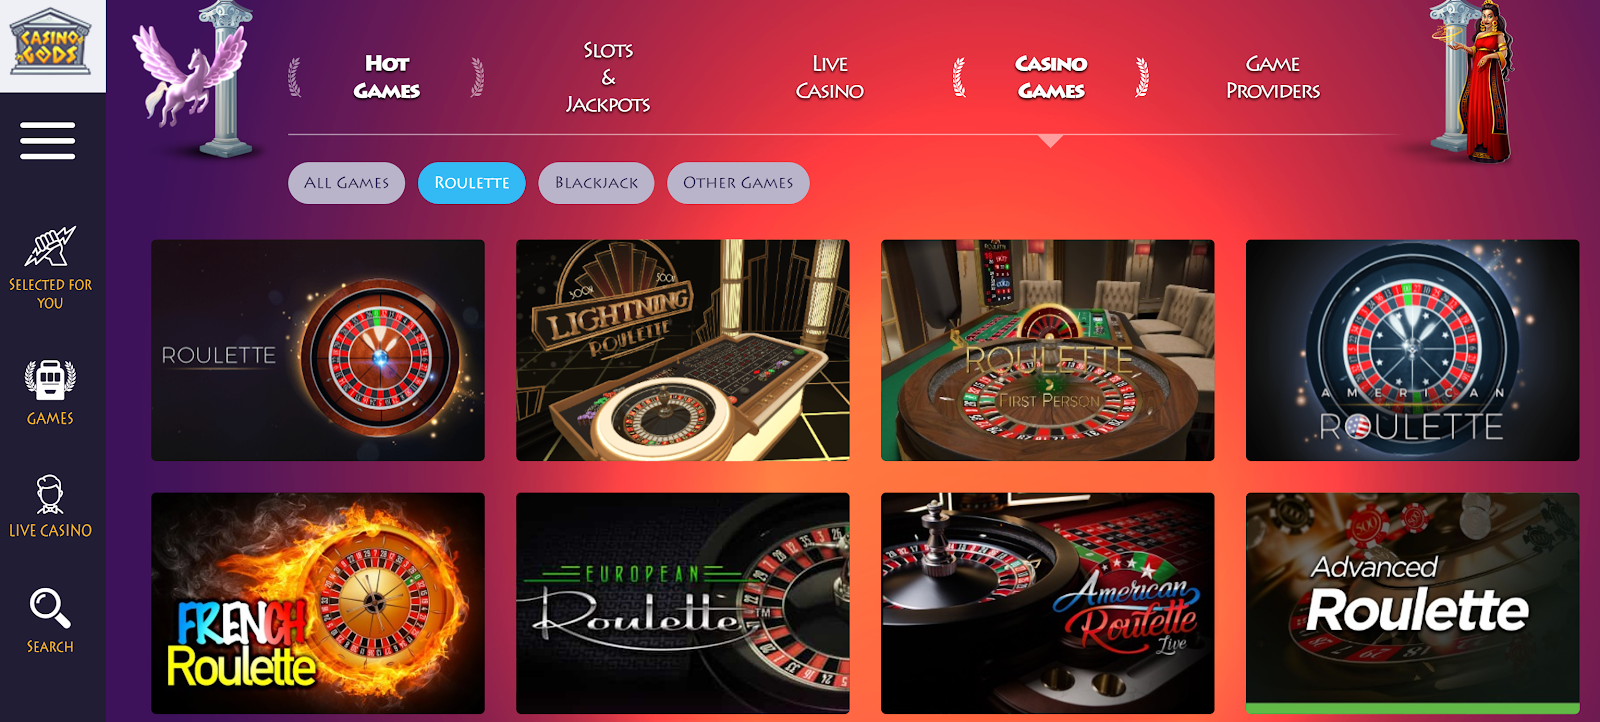 Casino Gods has loads of excellent roulette games you can play